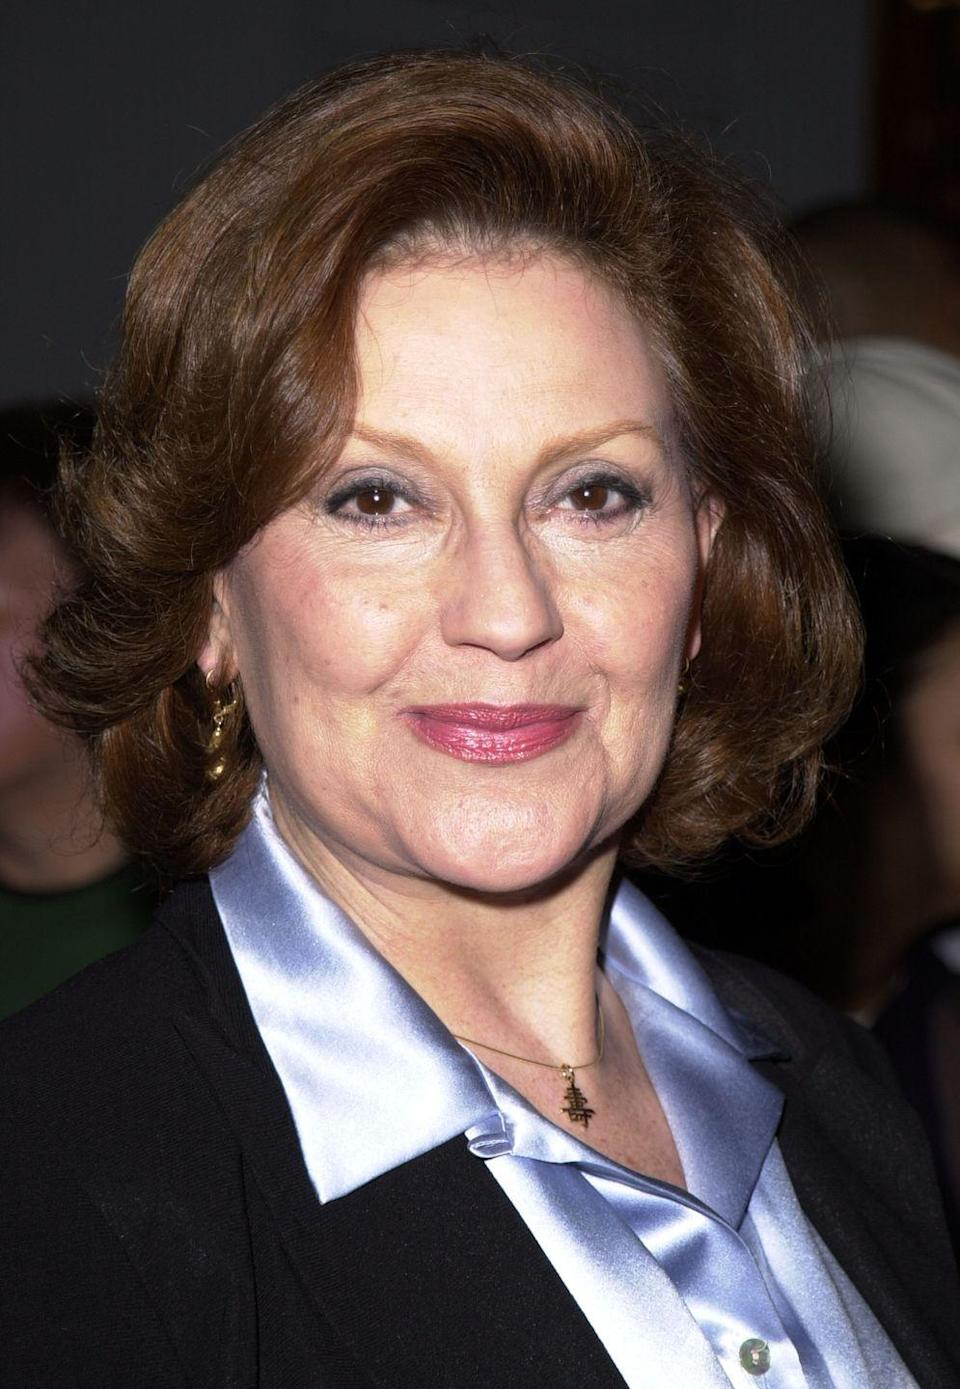 """<p>Kelly Bishop has been working in TV and film since the late '50s. Her first role was on the soap opera <em>As The World Turns</em> and she later appeared in <em>Dirty Dancing. </em>In 2000, the actress was cast in the role of Emily Gilmore, the wealthy and cold matriarch of the Gilmore family. """"I've always enjoyed playing what I call the nasty, rich women. Because I can't stand them,"""" <a href=""""https://tvline.com/2016/11/29/gilmore-girls-cast-panel-revival-netflix-a-year-in-the-life/"""" rel=""""nofollow noopener"""" target=""""_blank"""" data-ylk=""""slk:she said on a panel in 2016"""" class=""""link rapid-noclick-resp"""">she said on a panel in 2016</a>. """"So I try to make them as awful as possible."""" </p>"""